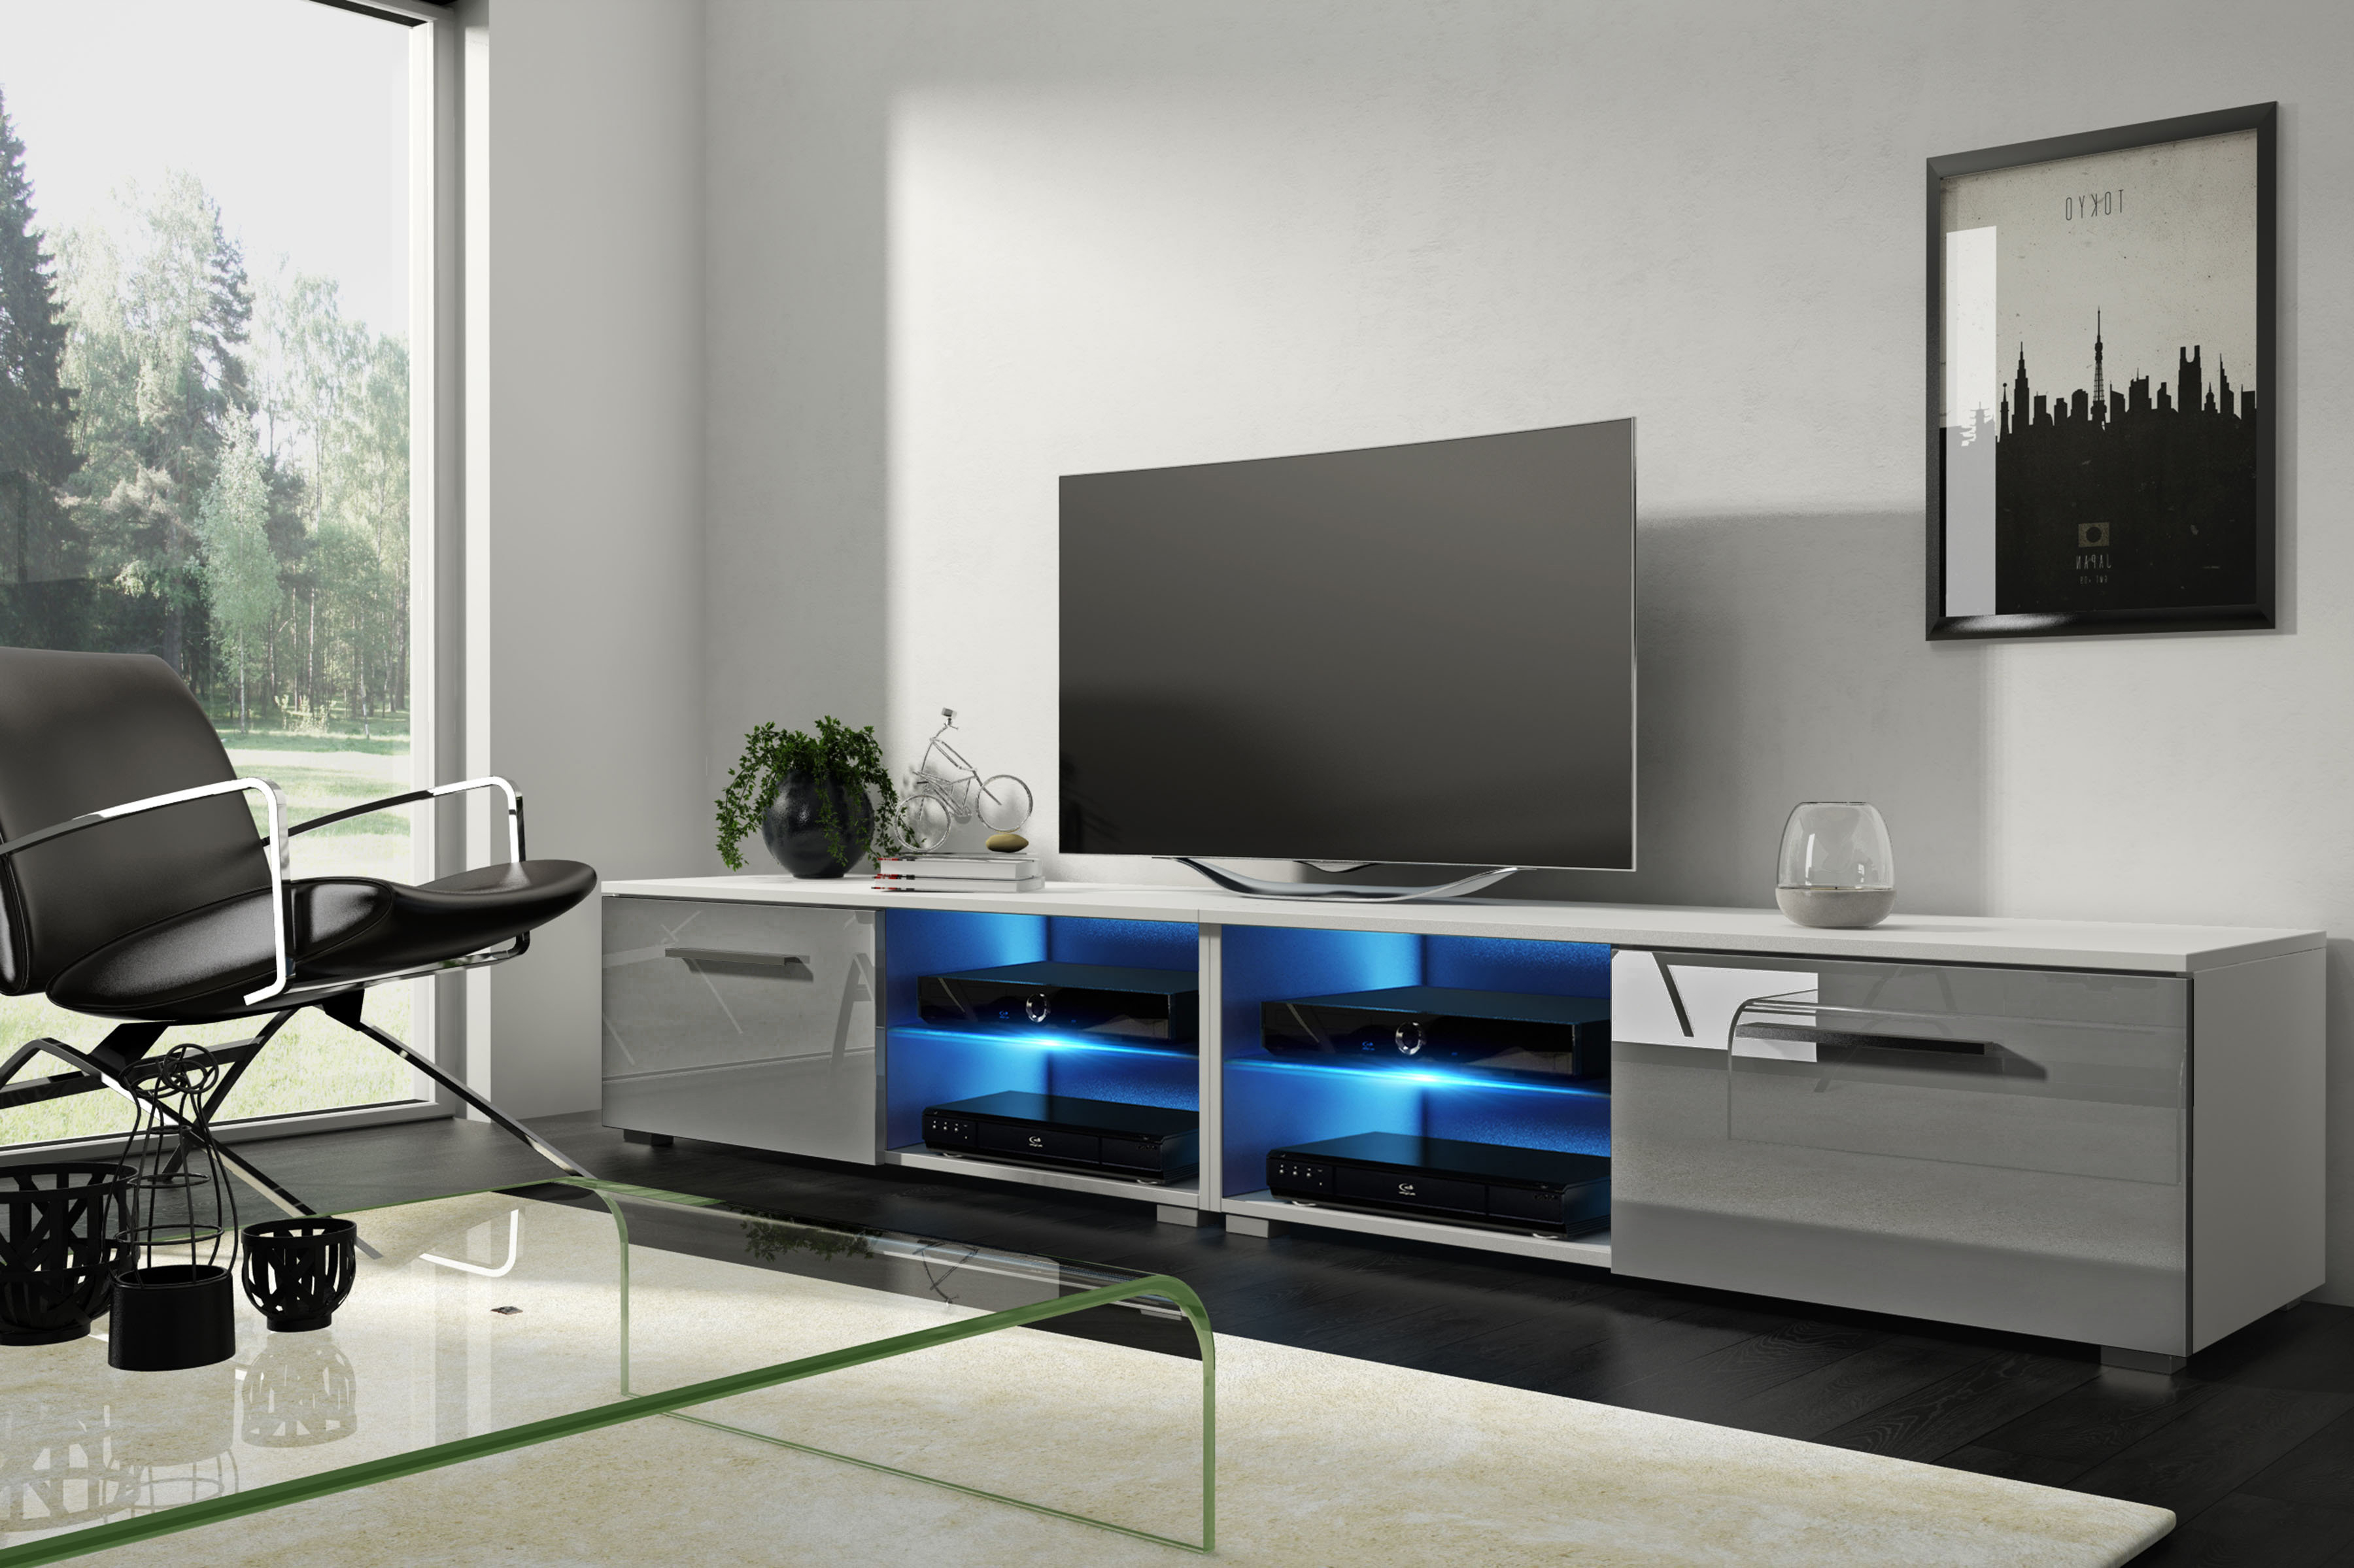 Modern Tv Cabinets For Flat Screens Regarding Most Popular Modern Tv Stands You'll Love (View 8 of 20)